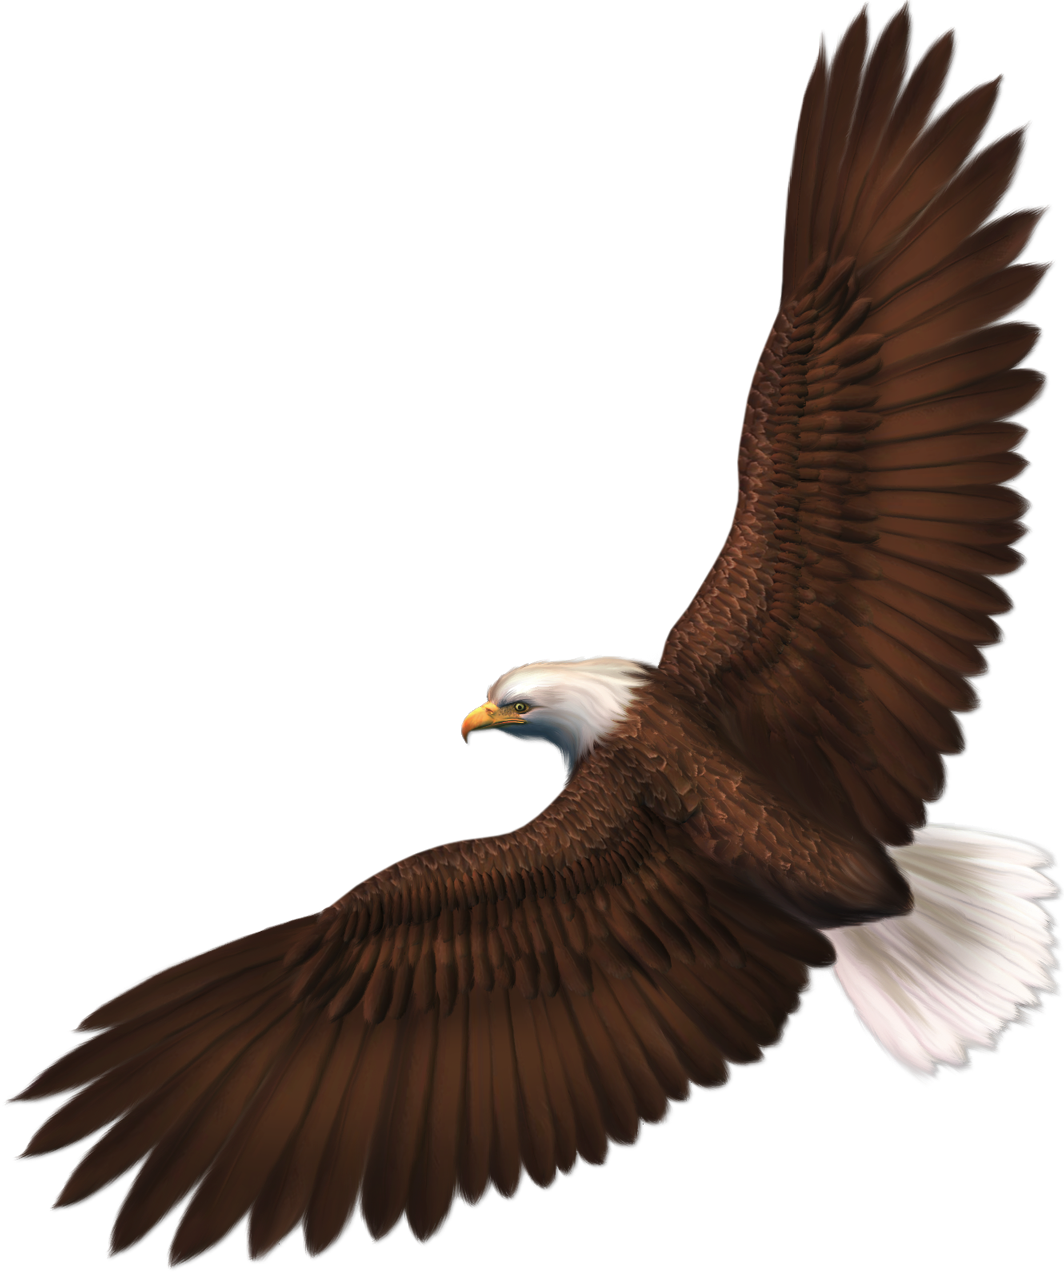 911 drawing eagle. Transparent png picture gallery